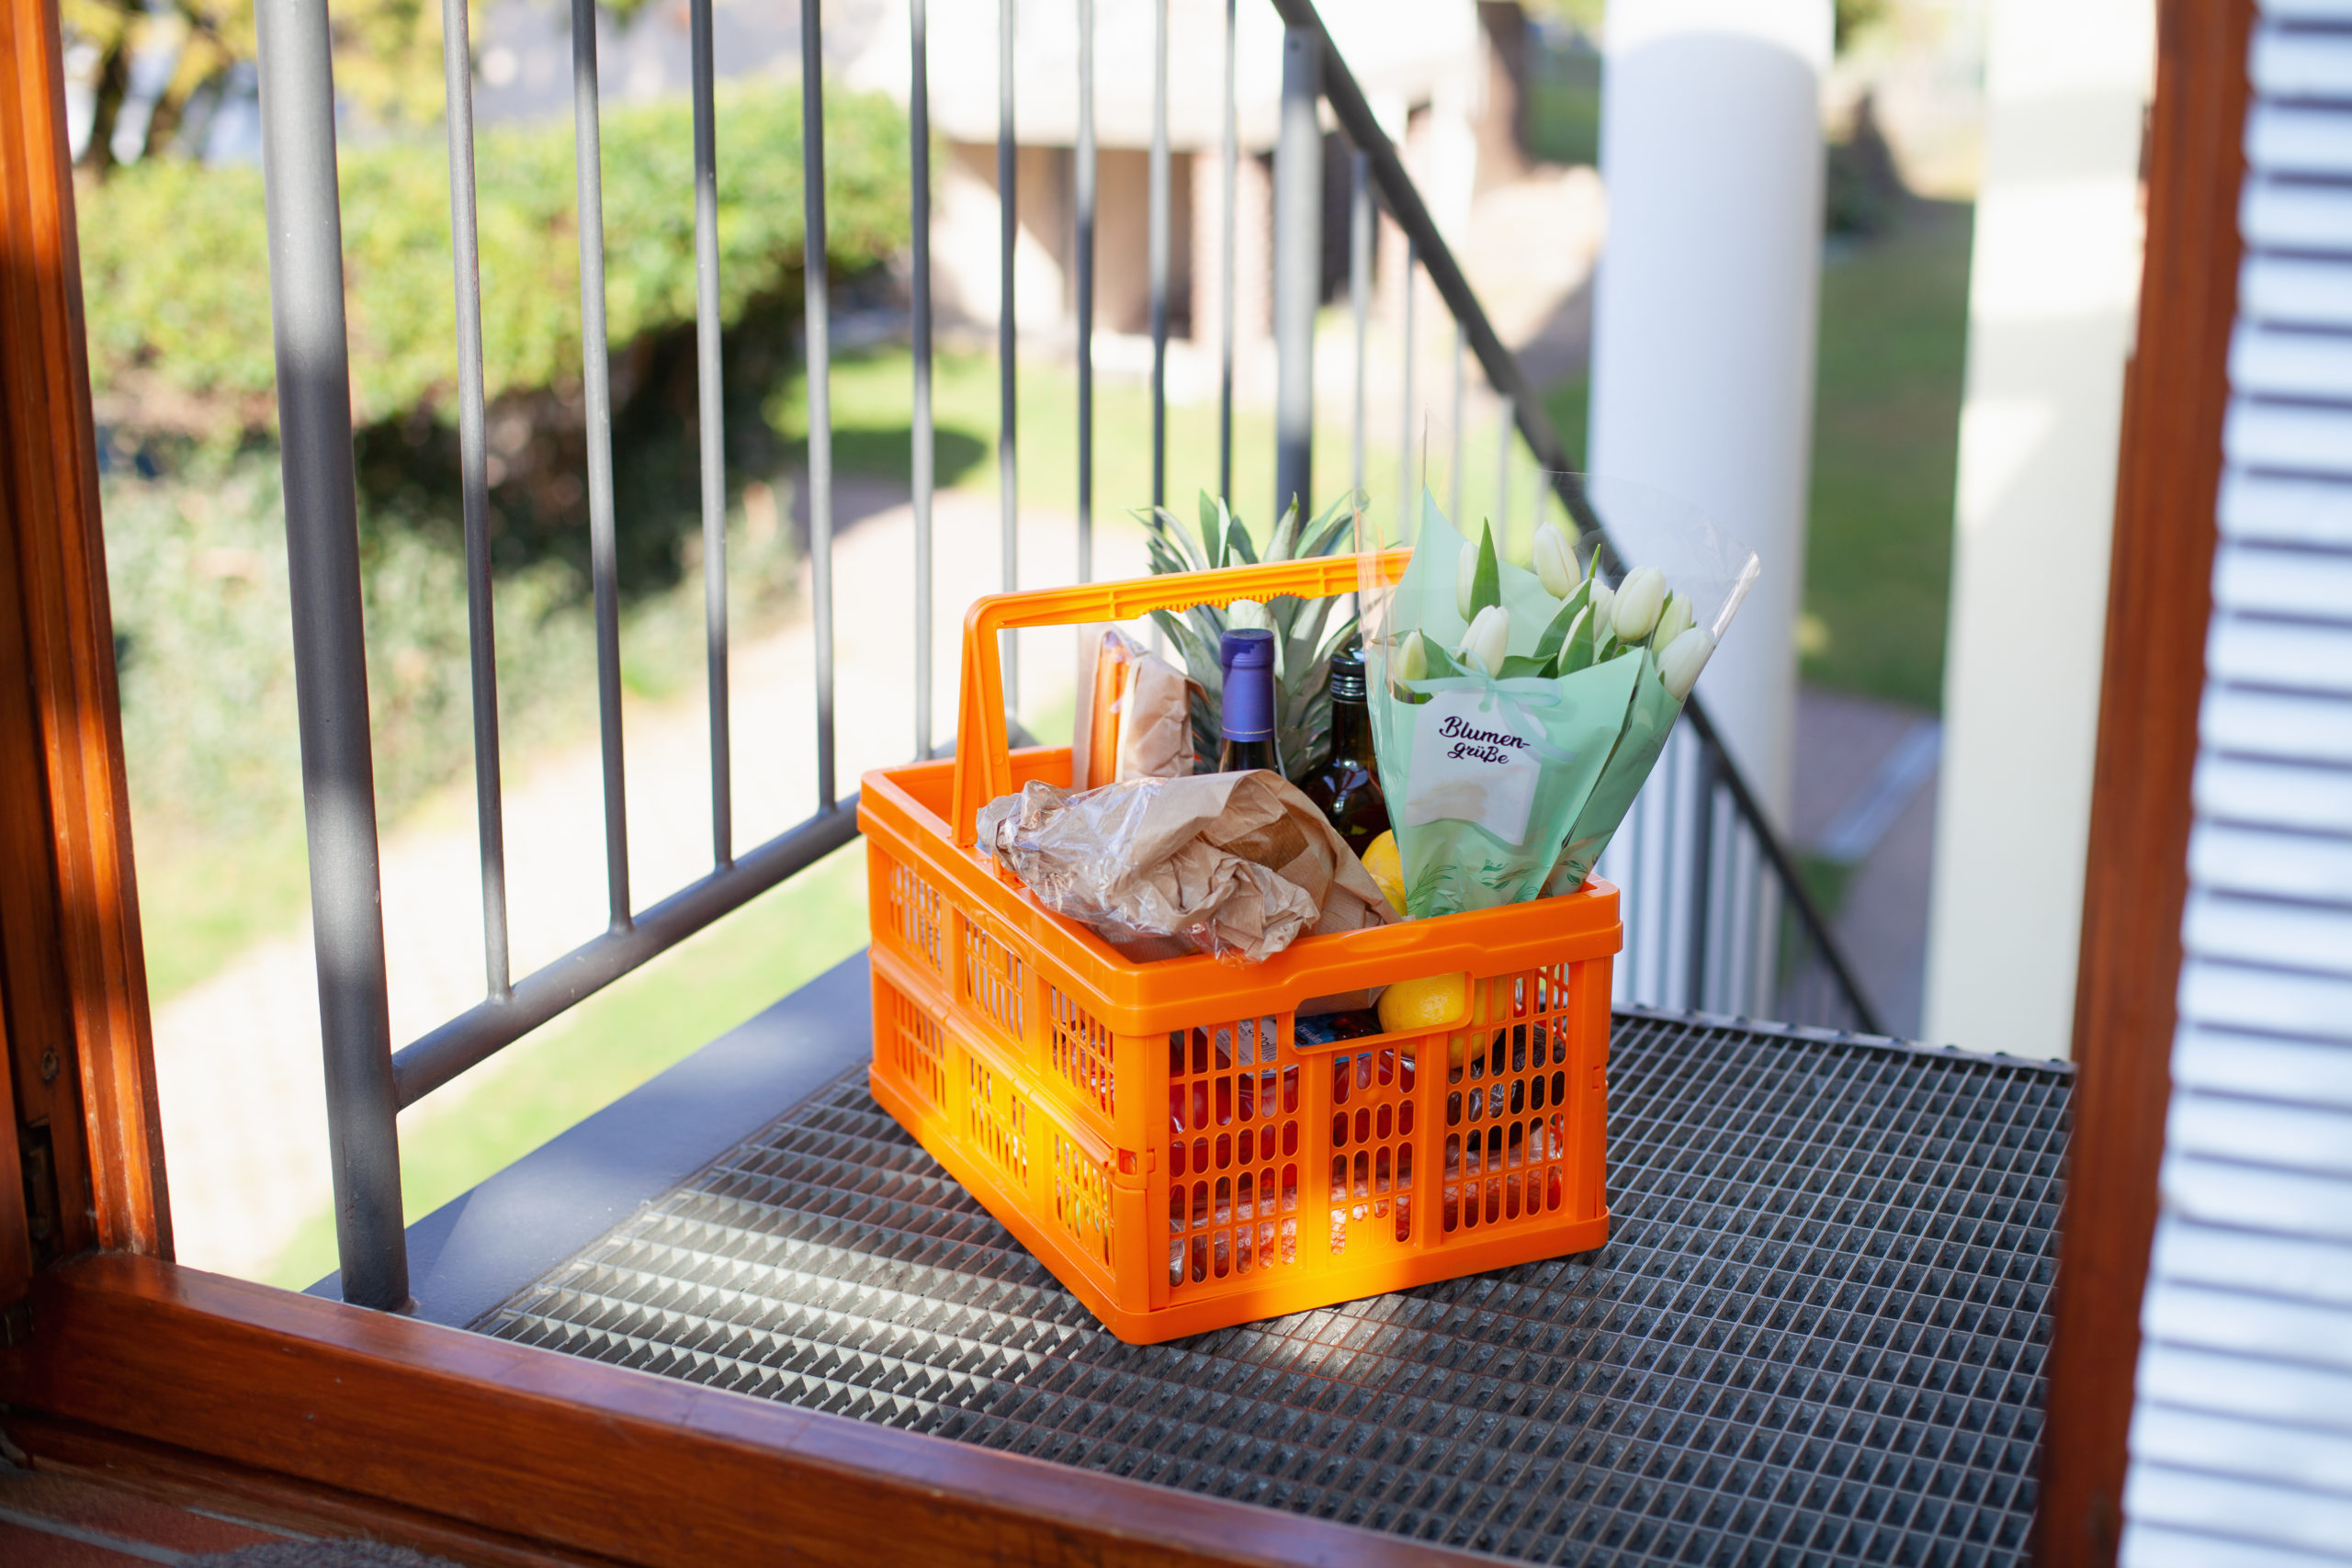 Neighborly help: A basket full of groceries left at the door